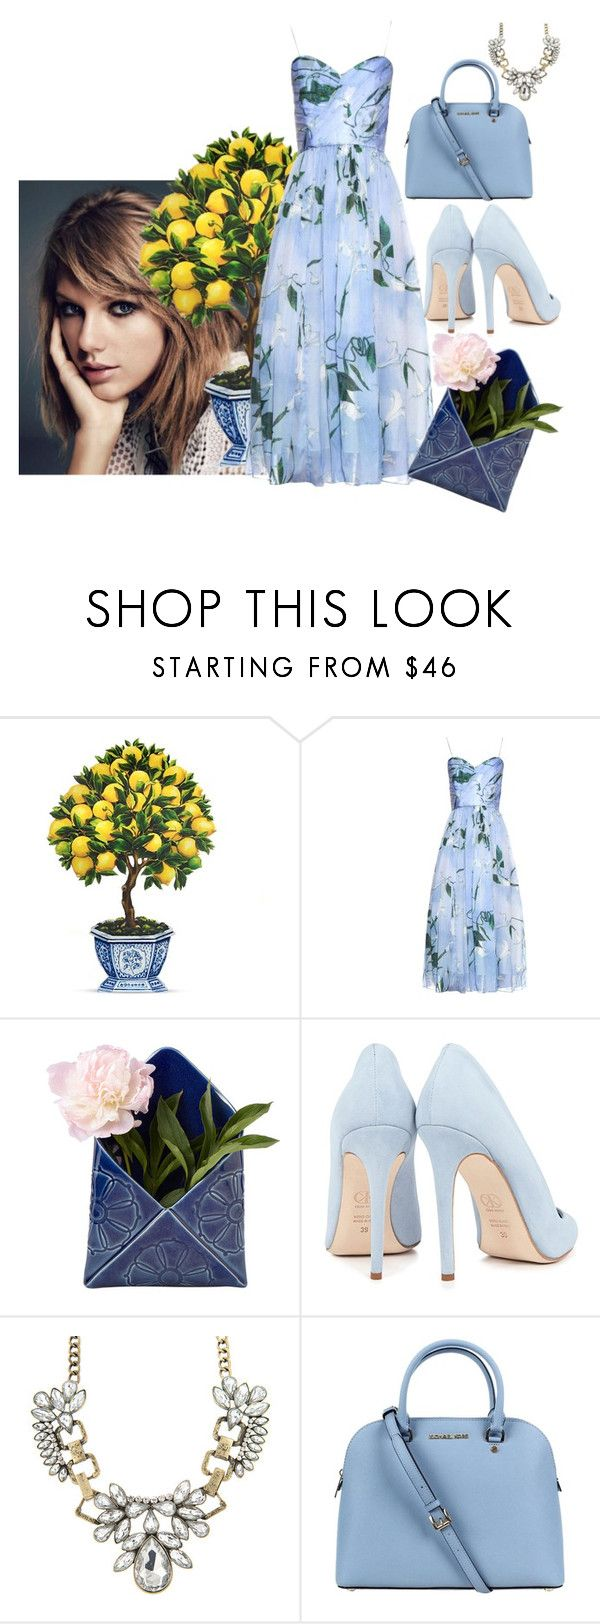 """printspired florals"" by arohii ❤ liked on Polyvore featuring Isolda, Creative Works, Dee Keller and Michael Kors"